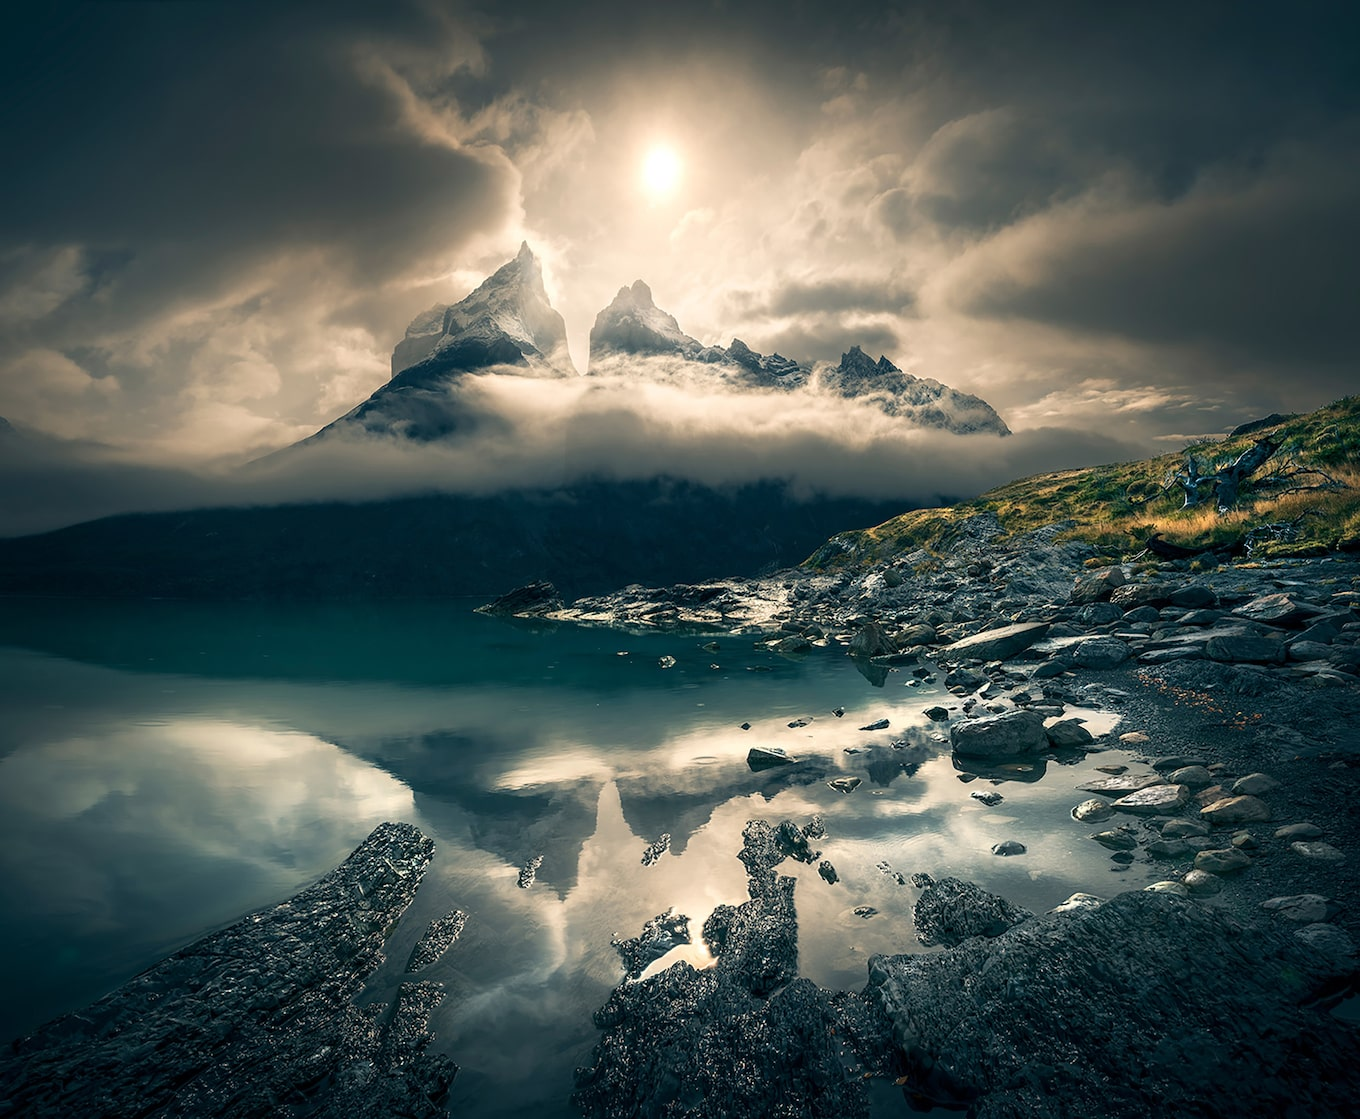 ilhan-eroglu-sony-alpha-7RIII-mist-covered-mountain-behind-eerily-still-lake